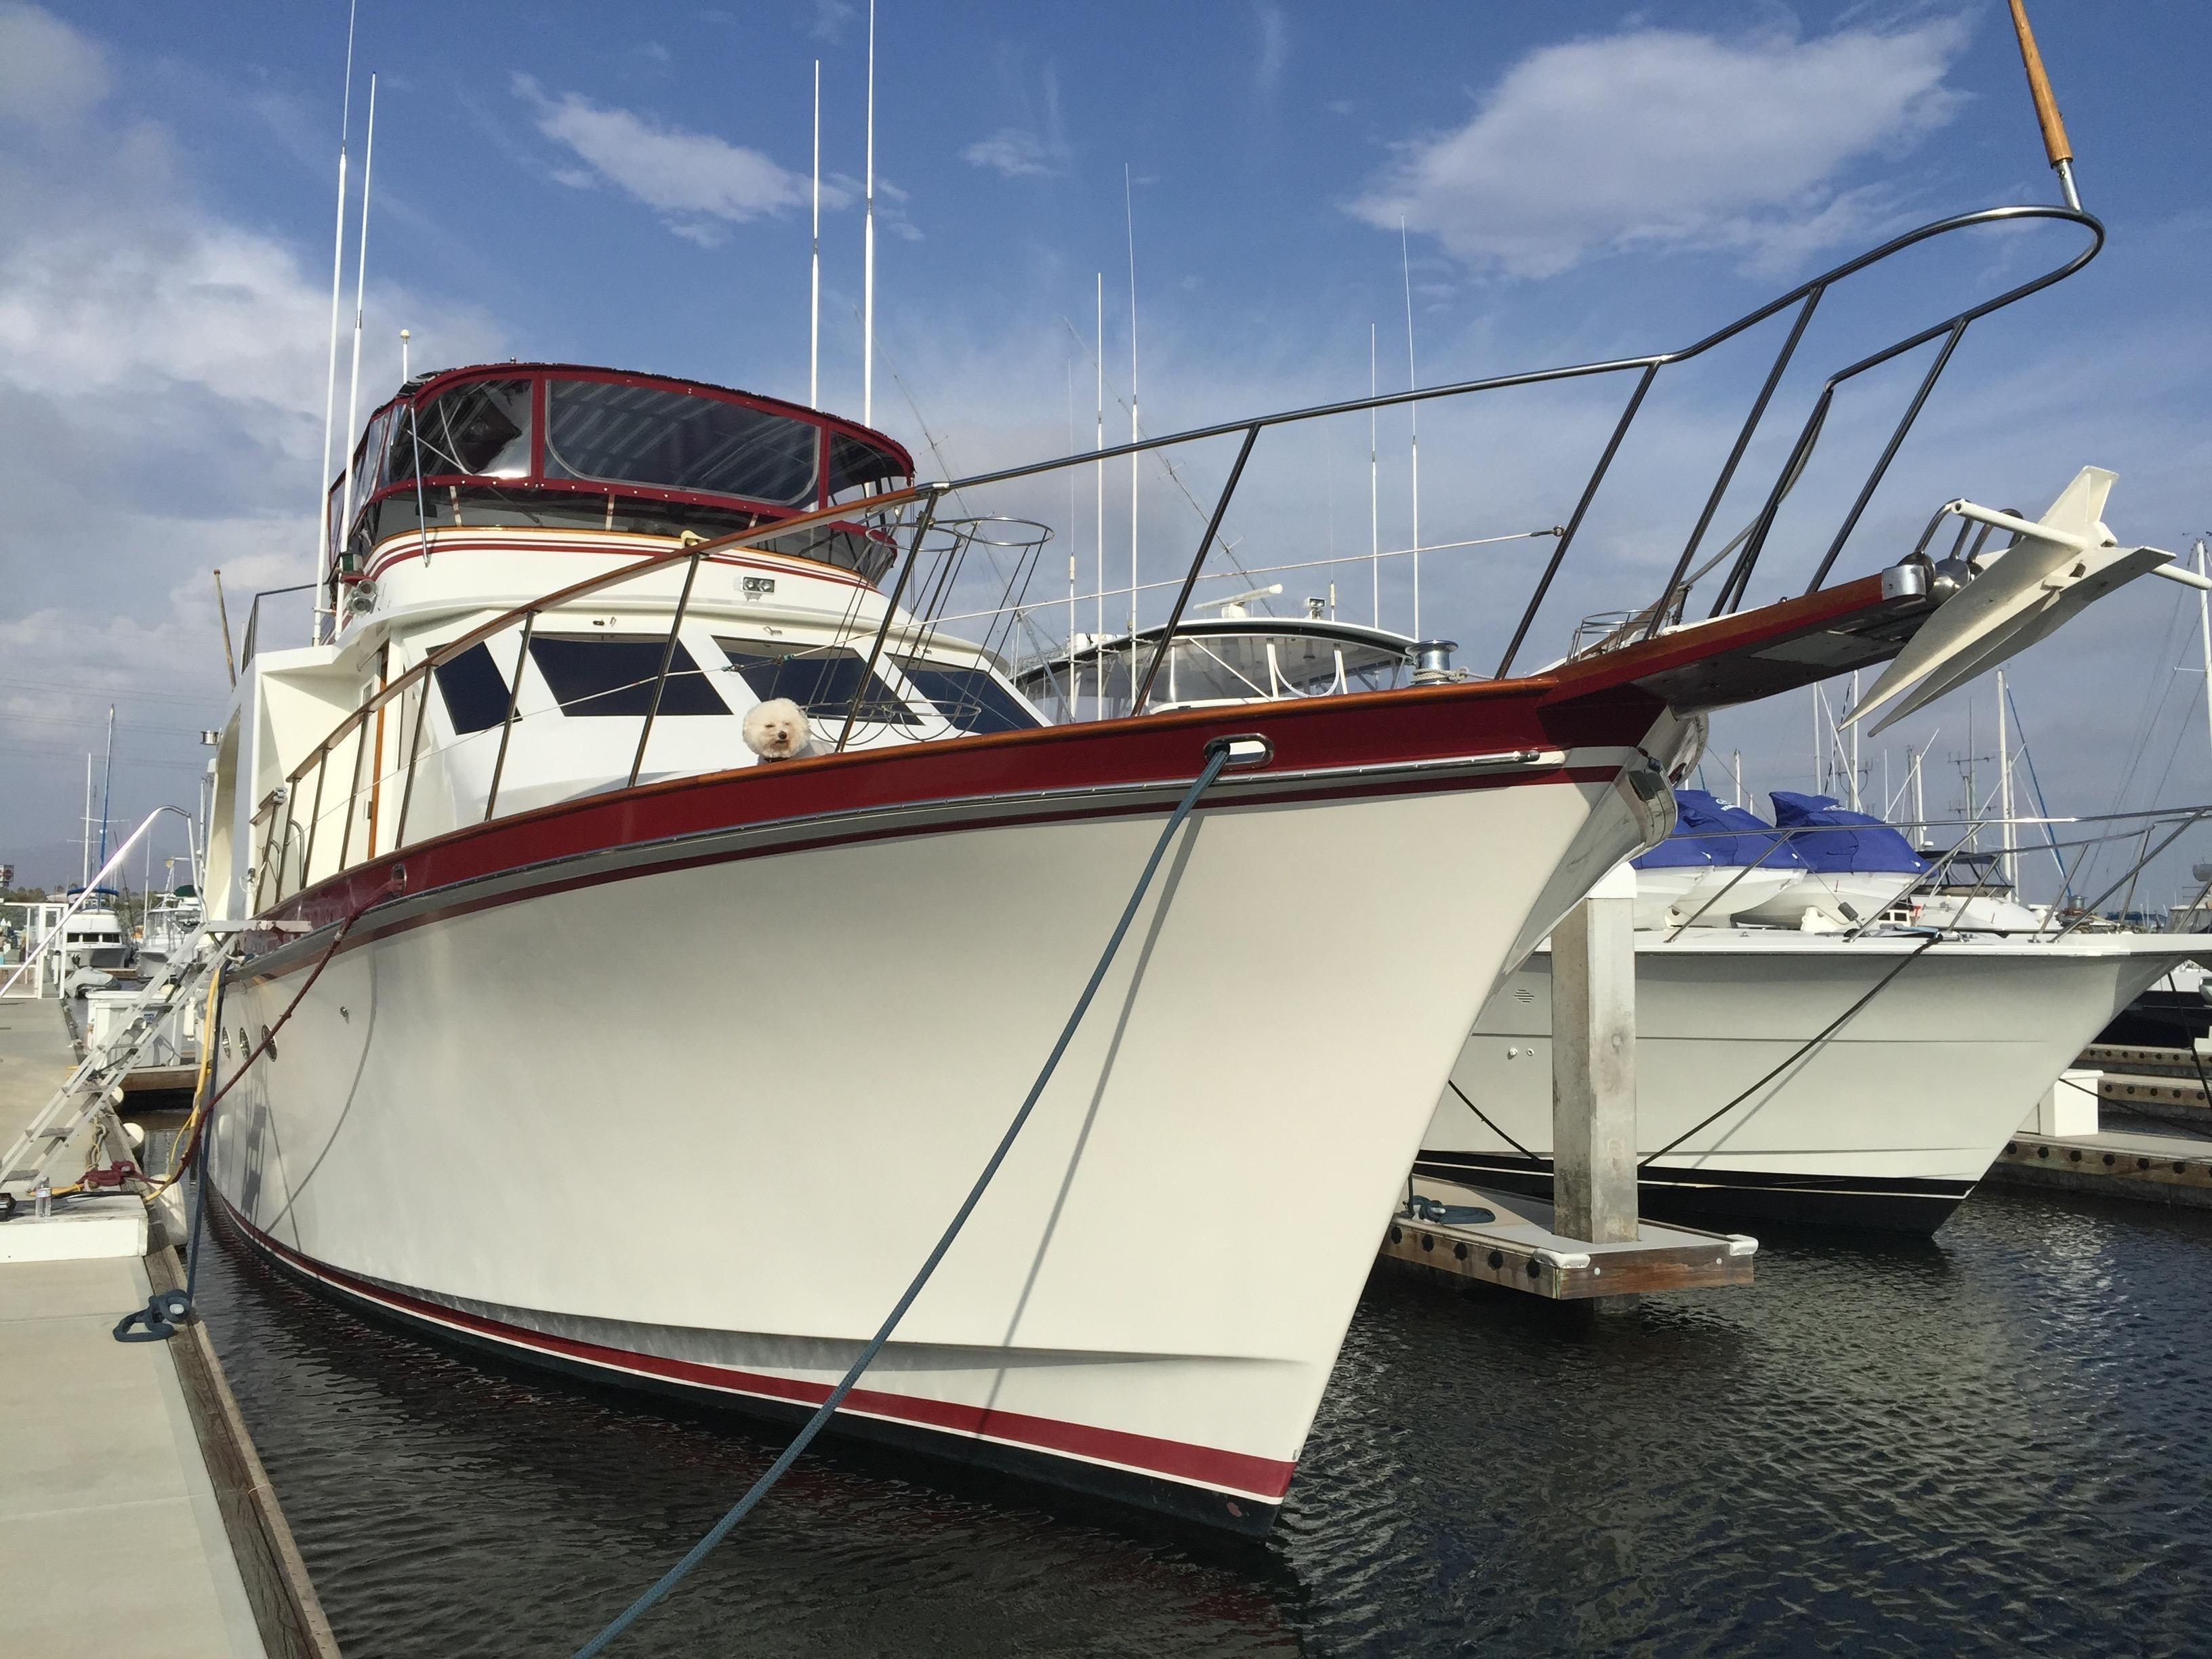 70 ocean alexander 1985 booz boat for sale in san diego